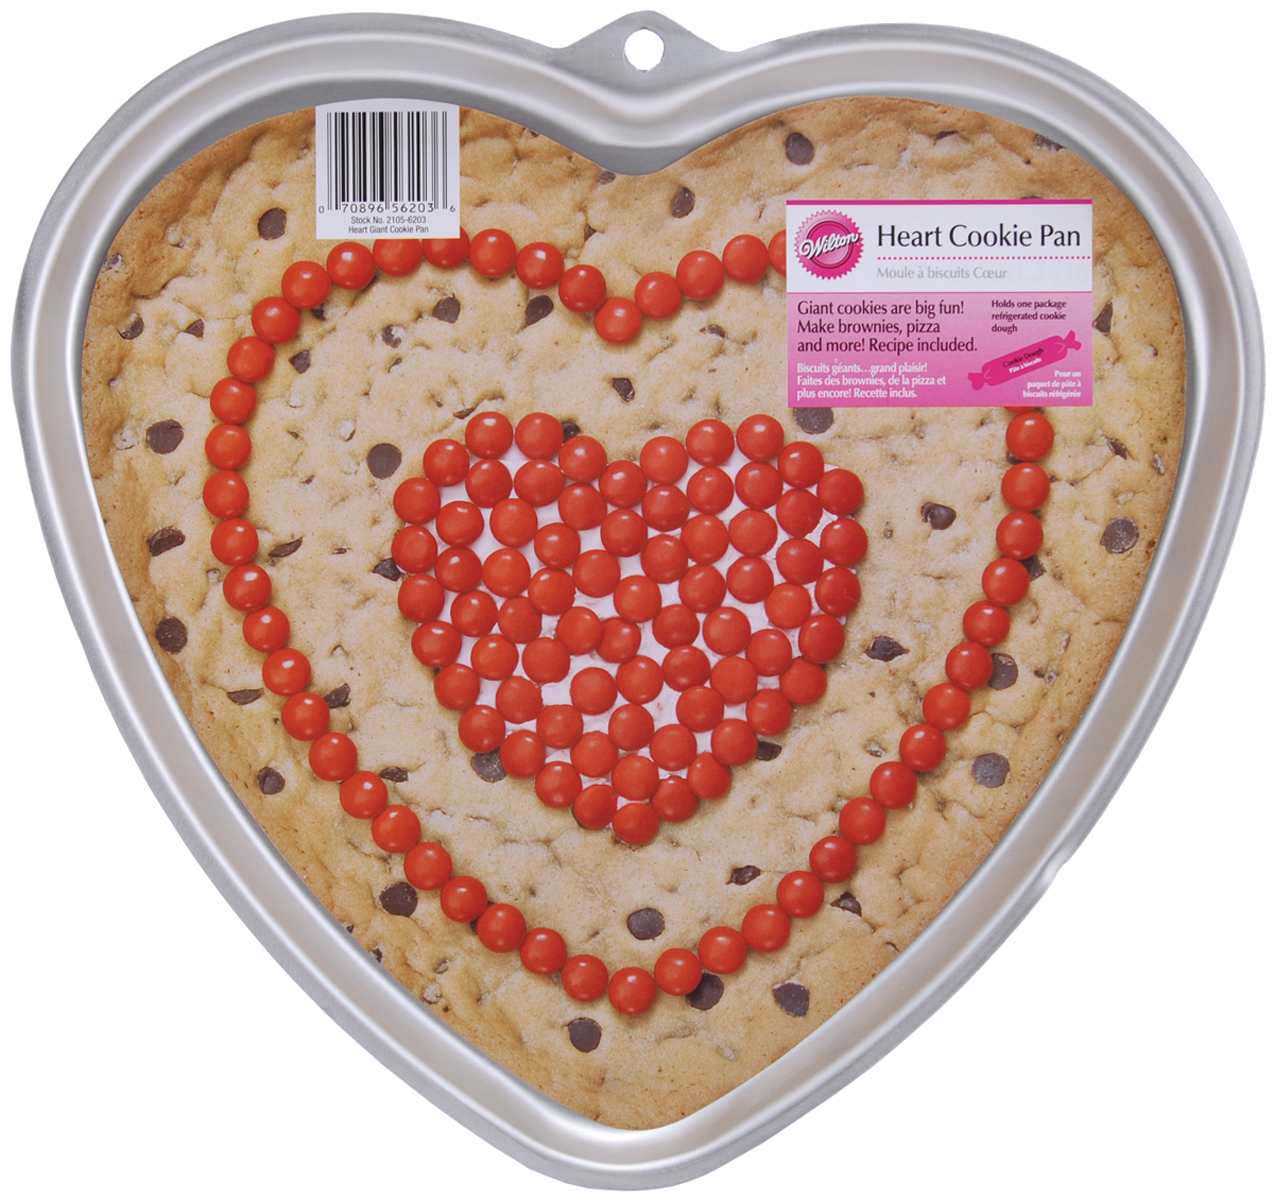 Wilton Heart Giant Cookie Pan Multi-Colored